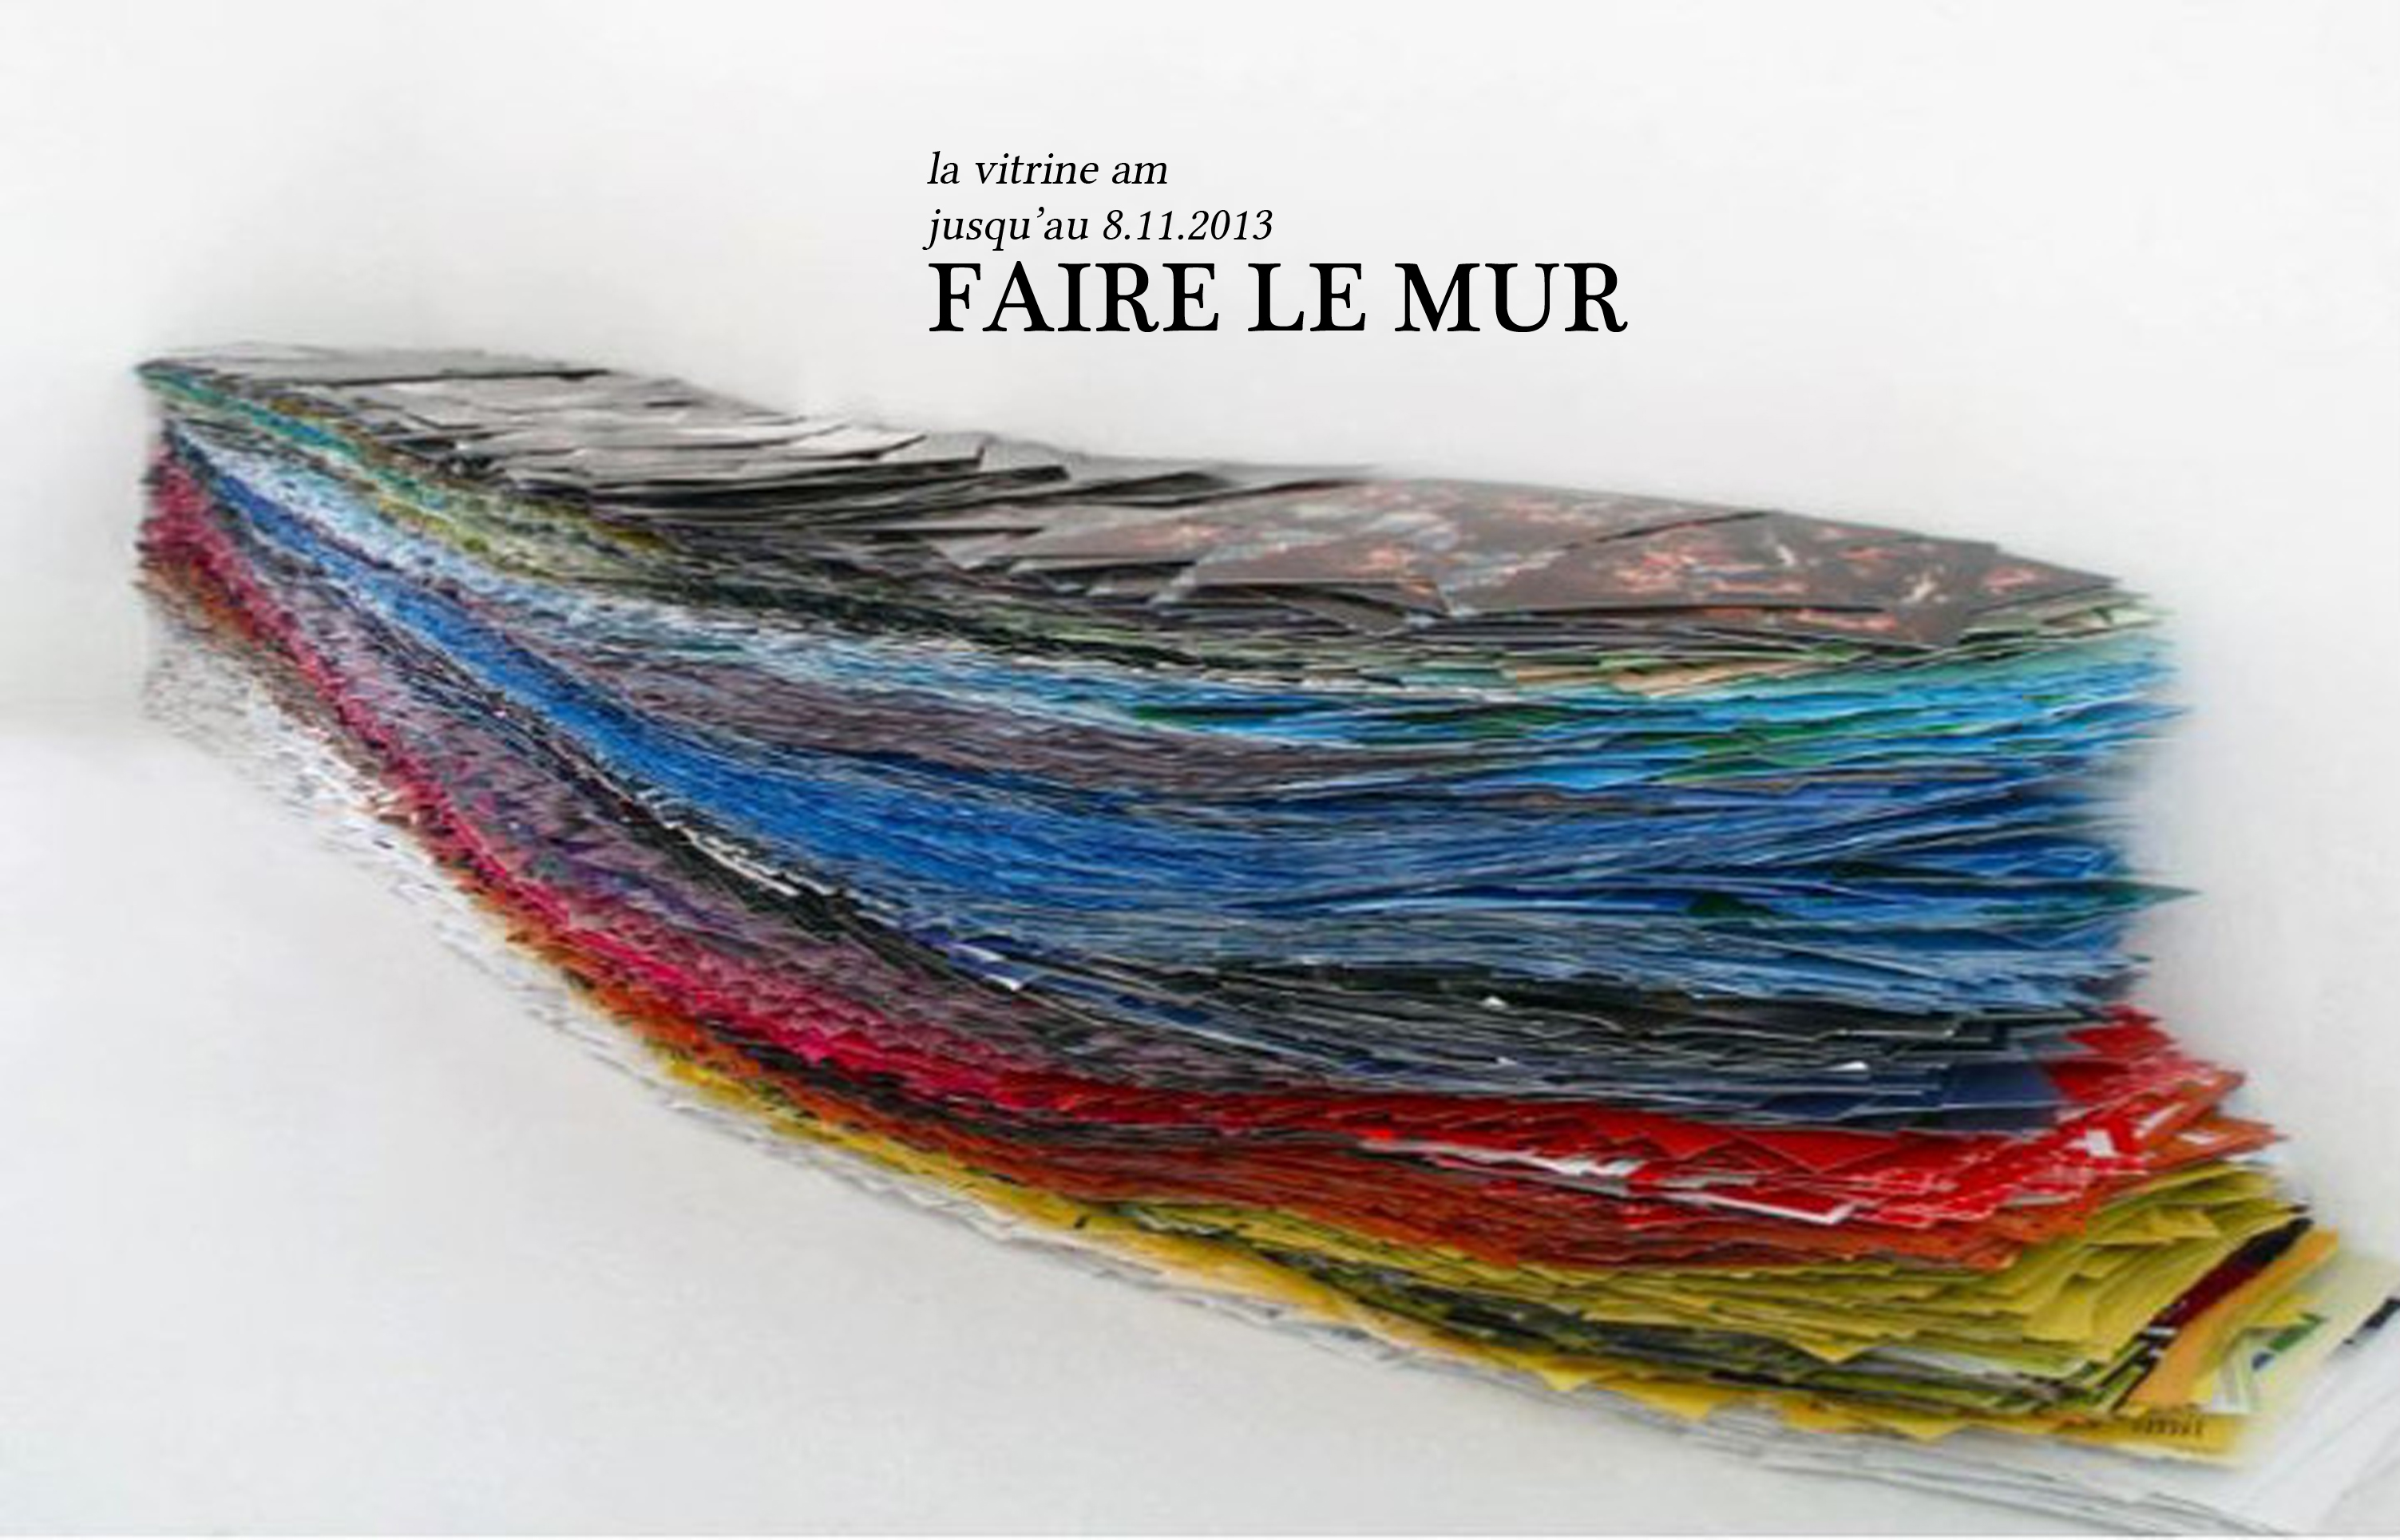 faire le mur - expo - paris - by-le-polyedre